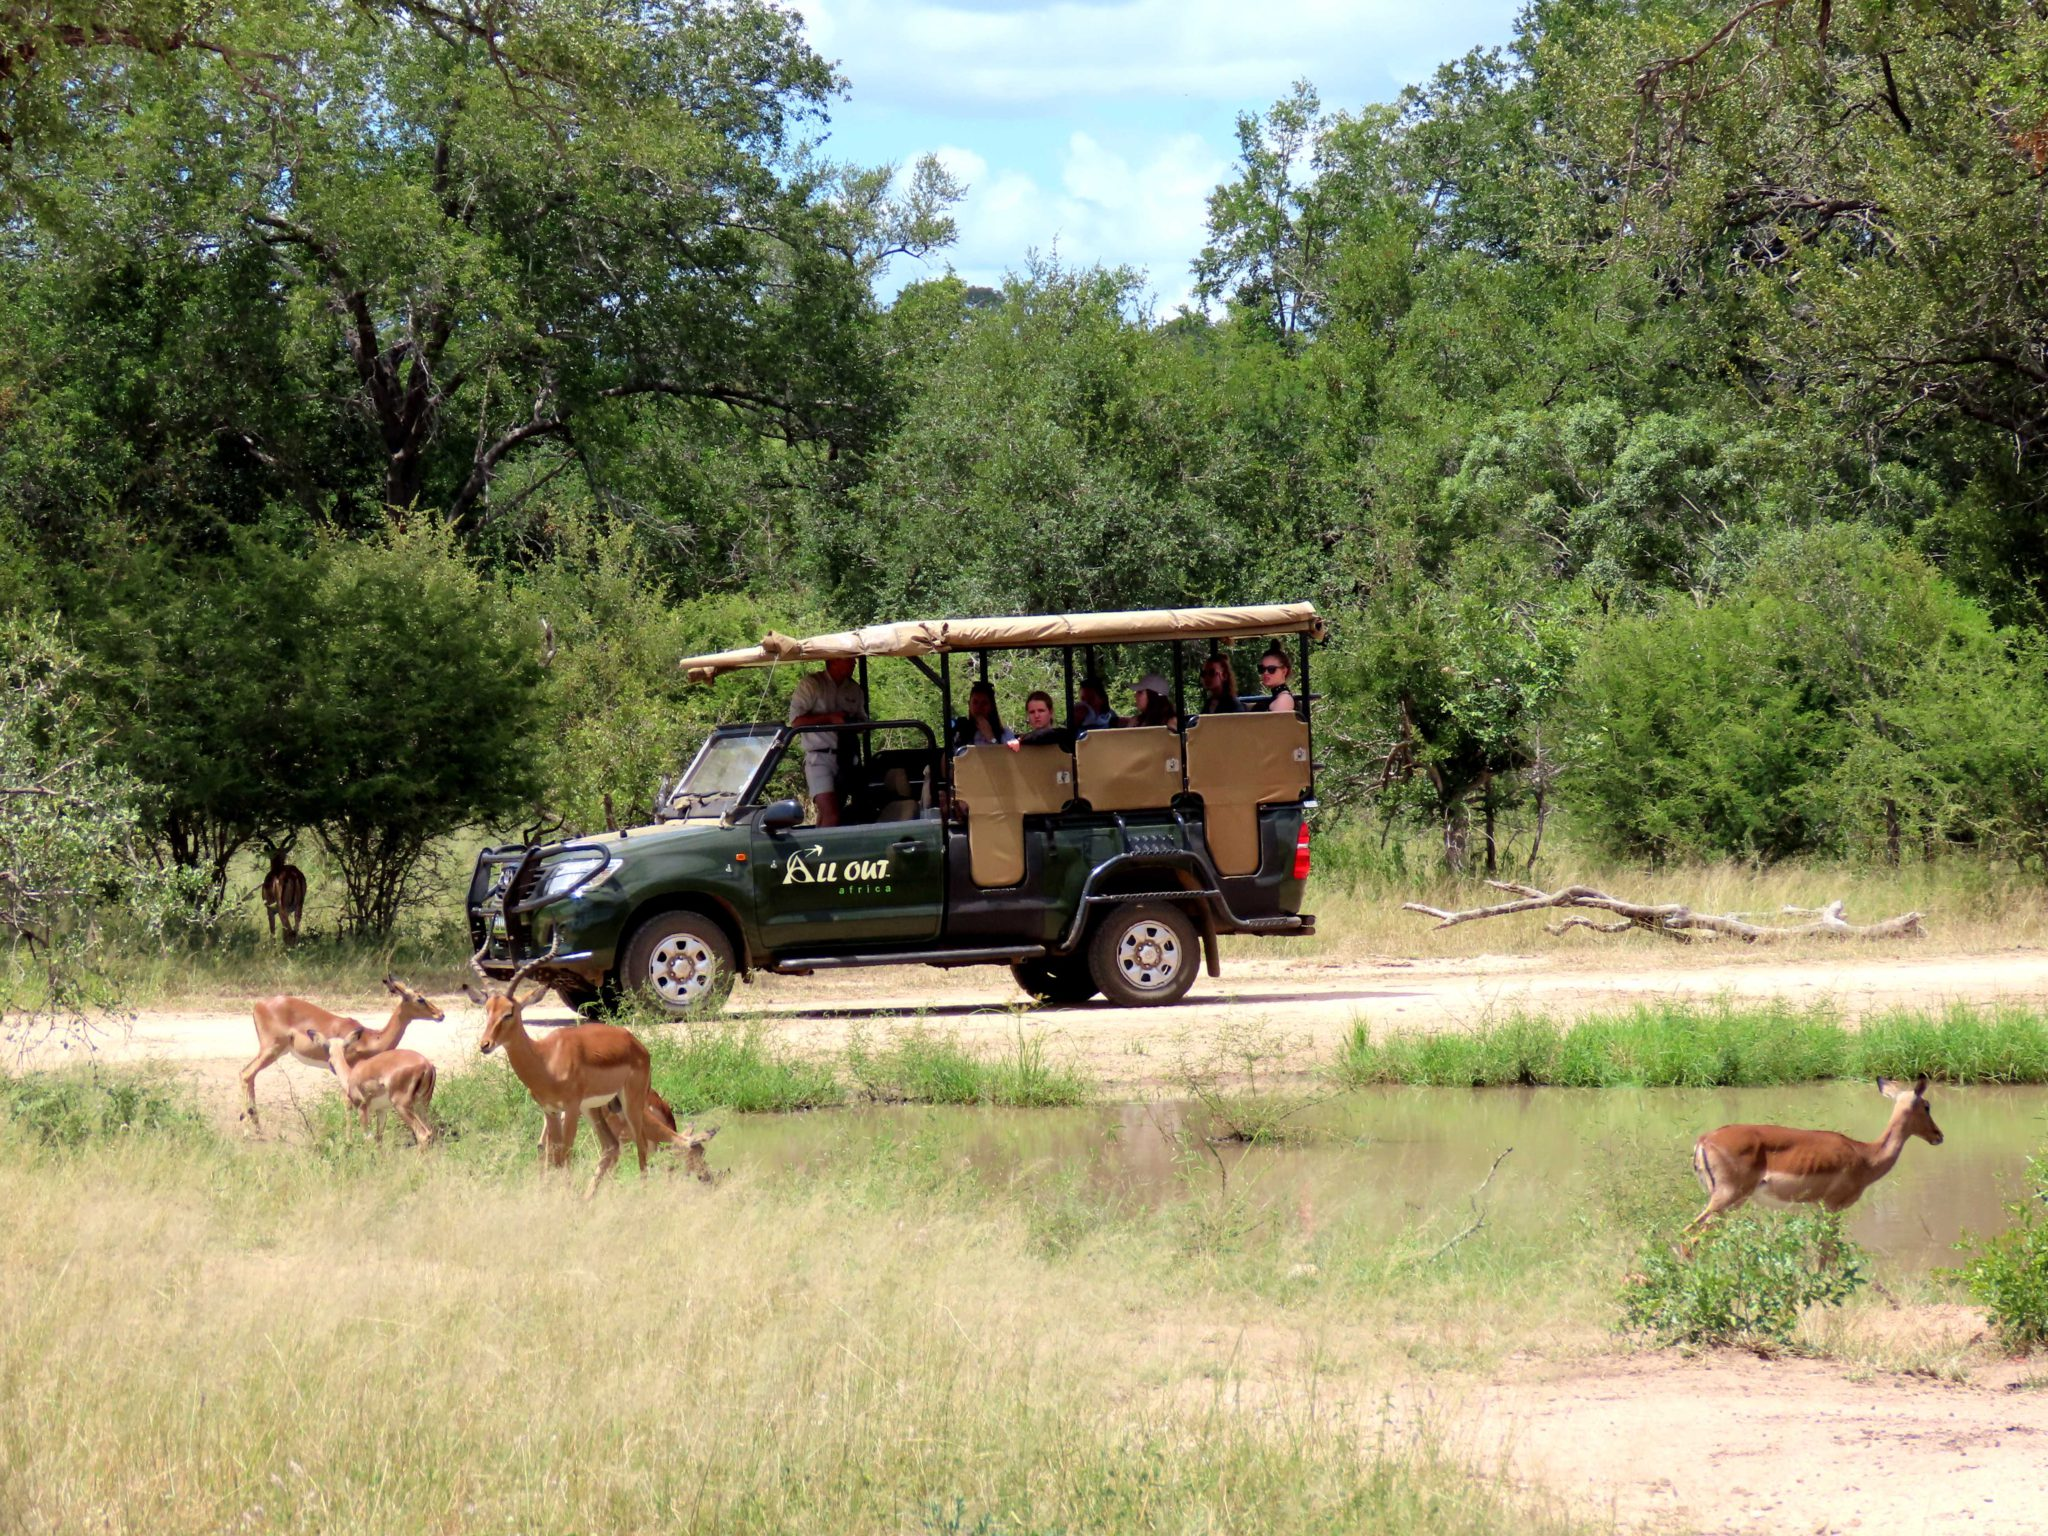 Guided South African day safari in Kruger National Park